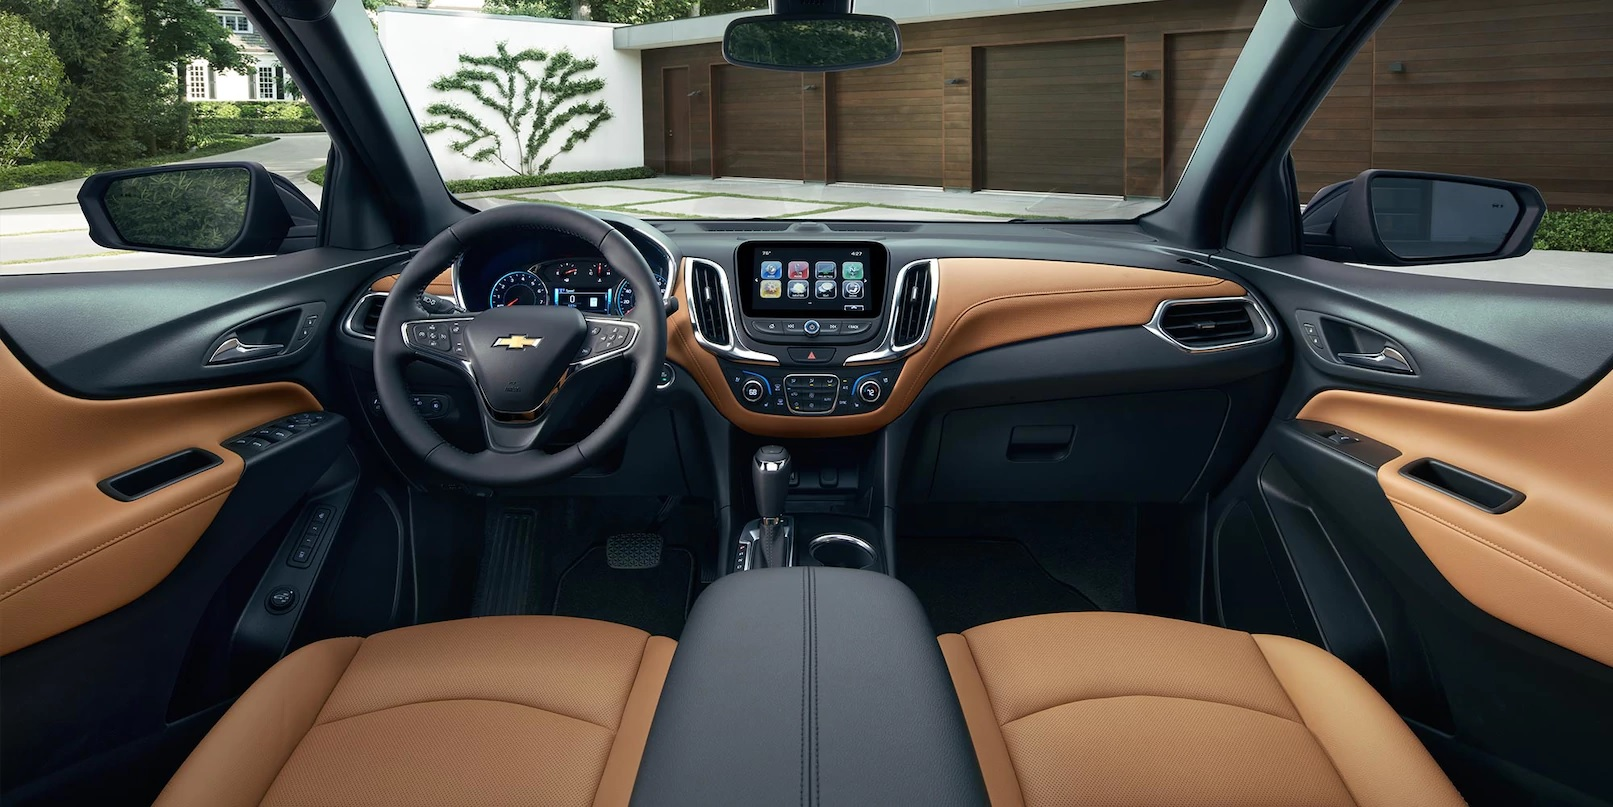 Chevy Equinox For Sale >> 2018 Chevrolet Equinox For Sale Near Toledo Oh Dave White Chevrolet